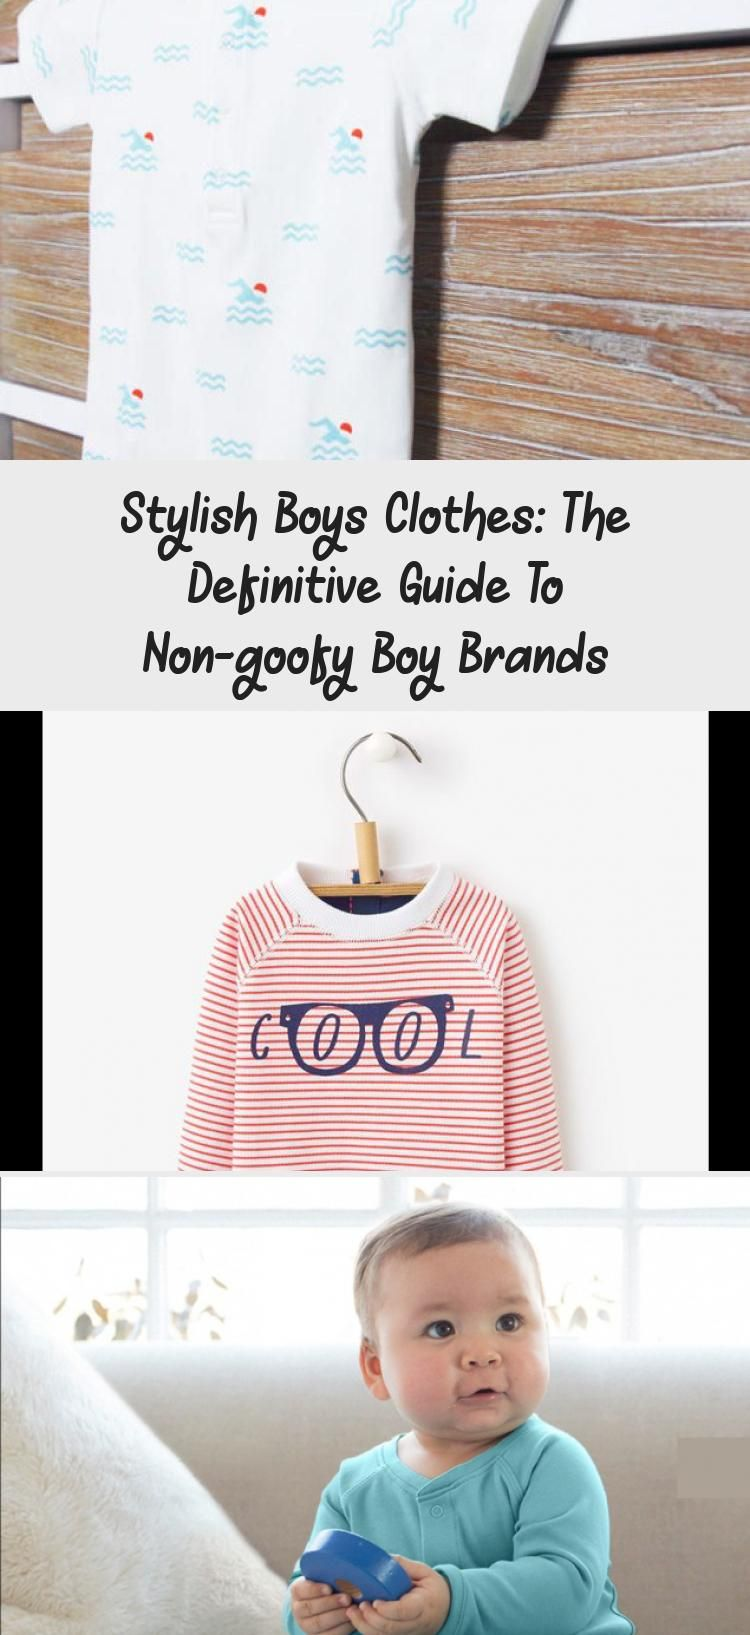 Stylish Boys Clothes The Definitive Guide To Non Goofy Boy Brands Boy Outfits Stylish Boys Stylish Boy Clothes